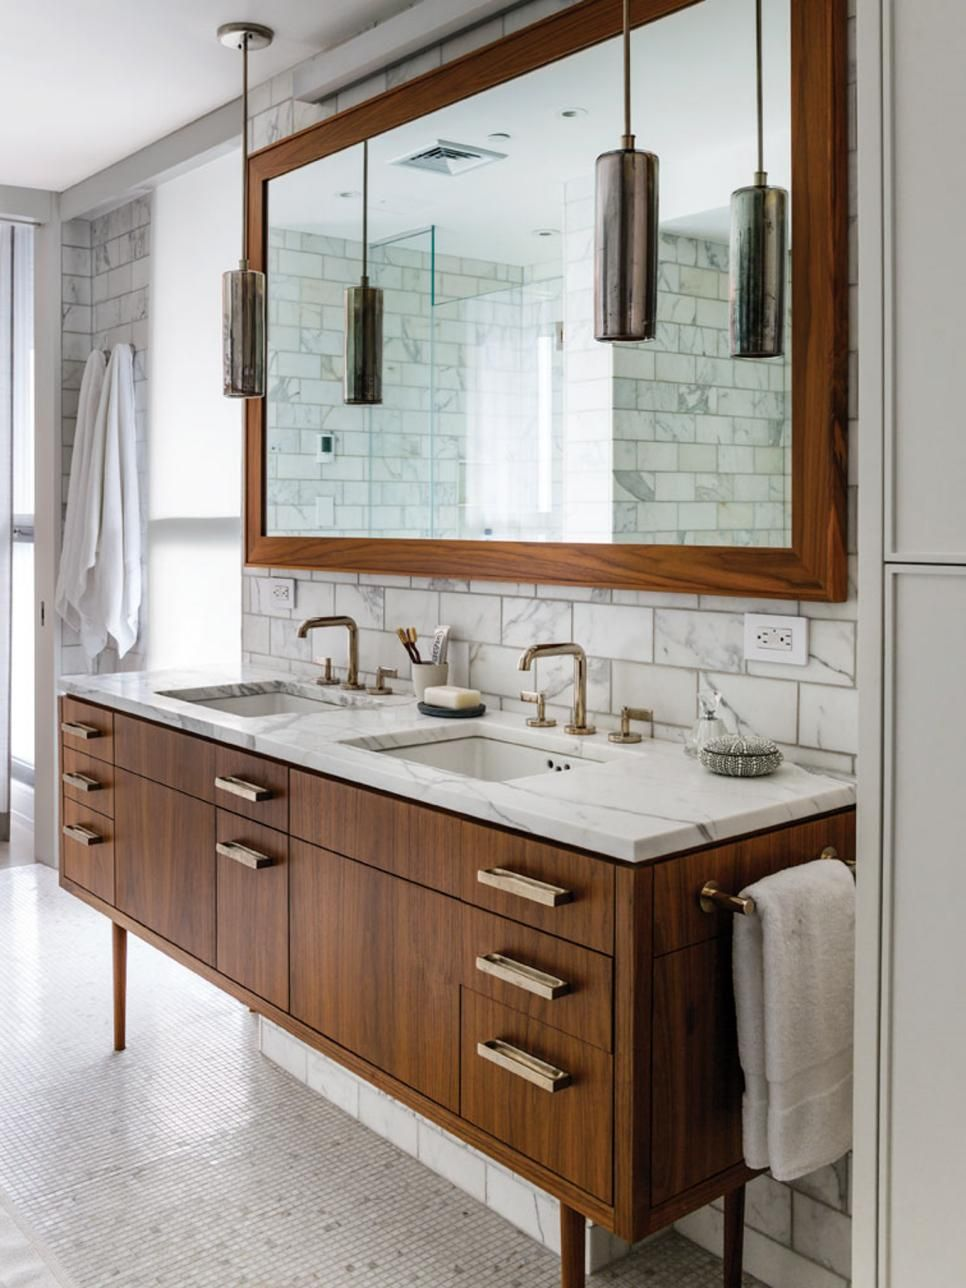 Bathroom Counter Designs Brilliant Bathroom Pictures 99 Stylish Design Ideas You'll Love  Luxurious Inspiration